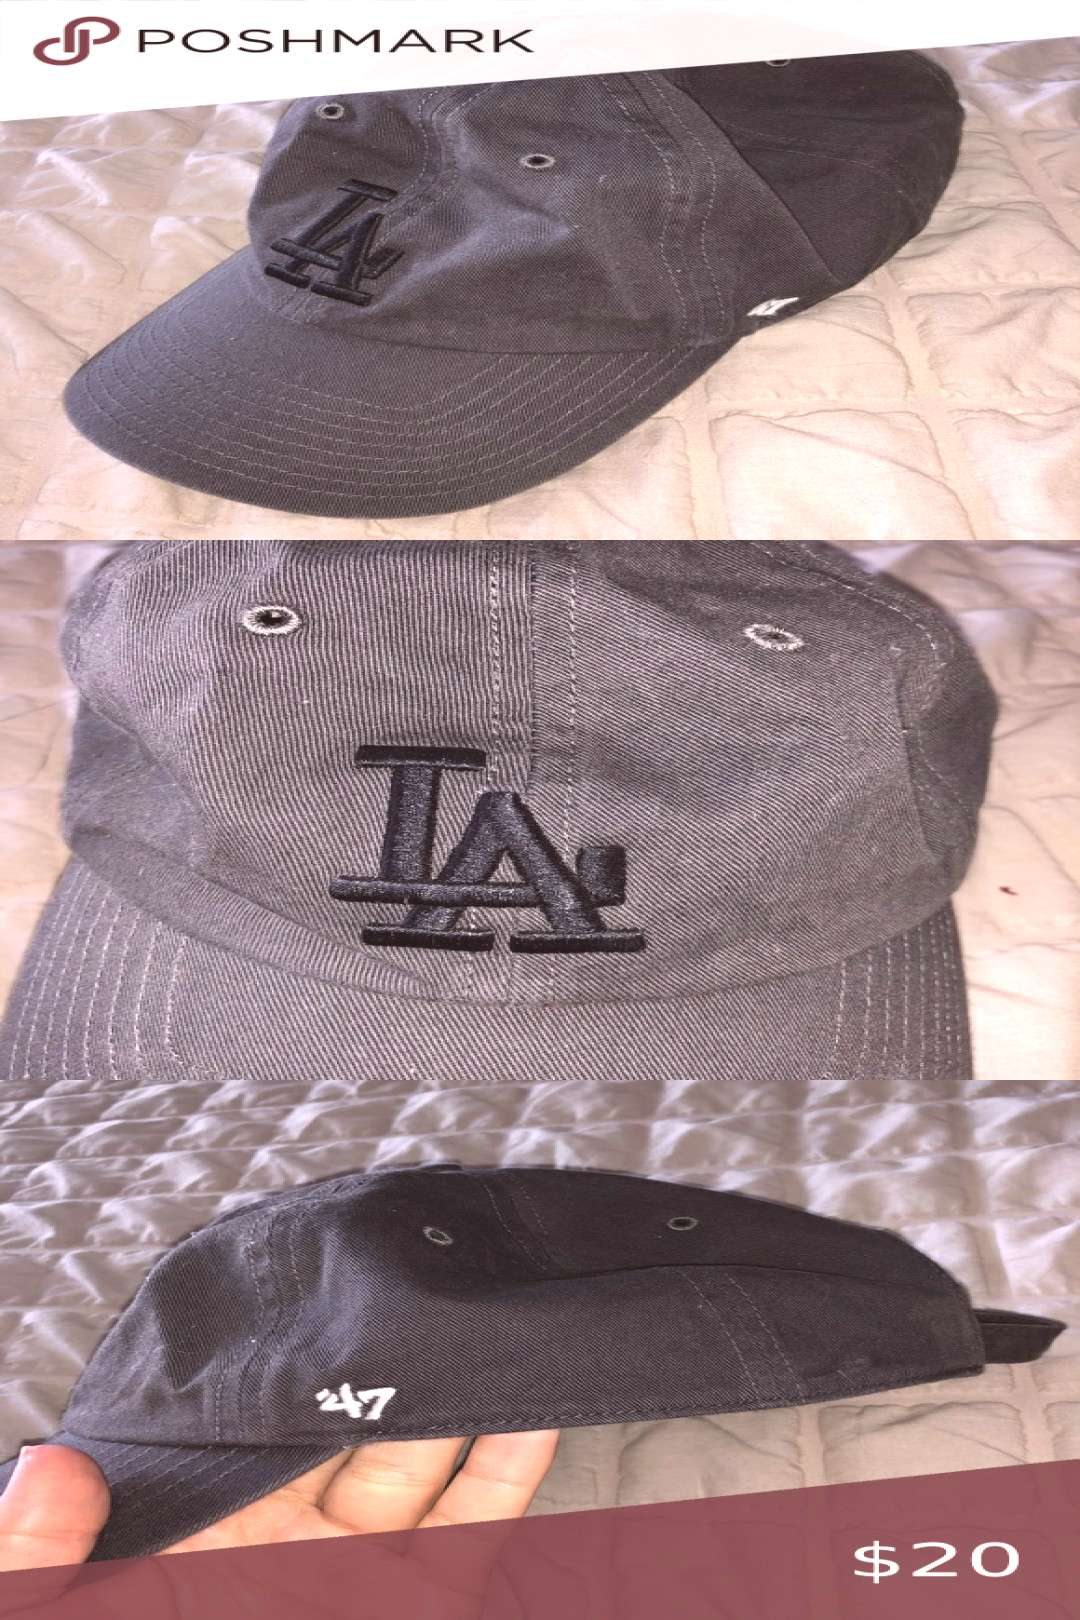 LA Dodgers Baseball Cap 47 Brand Bought at nordstrom!! Great quality, no flaws, super cute and styl